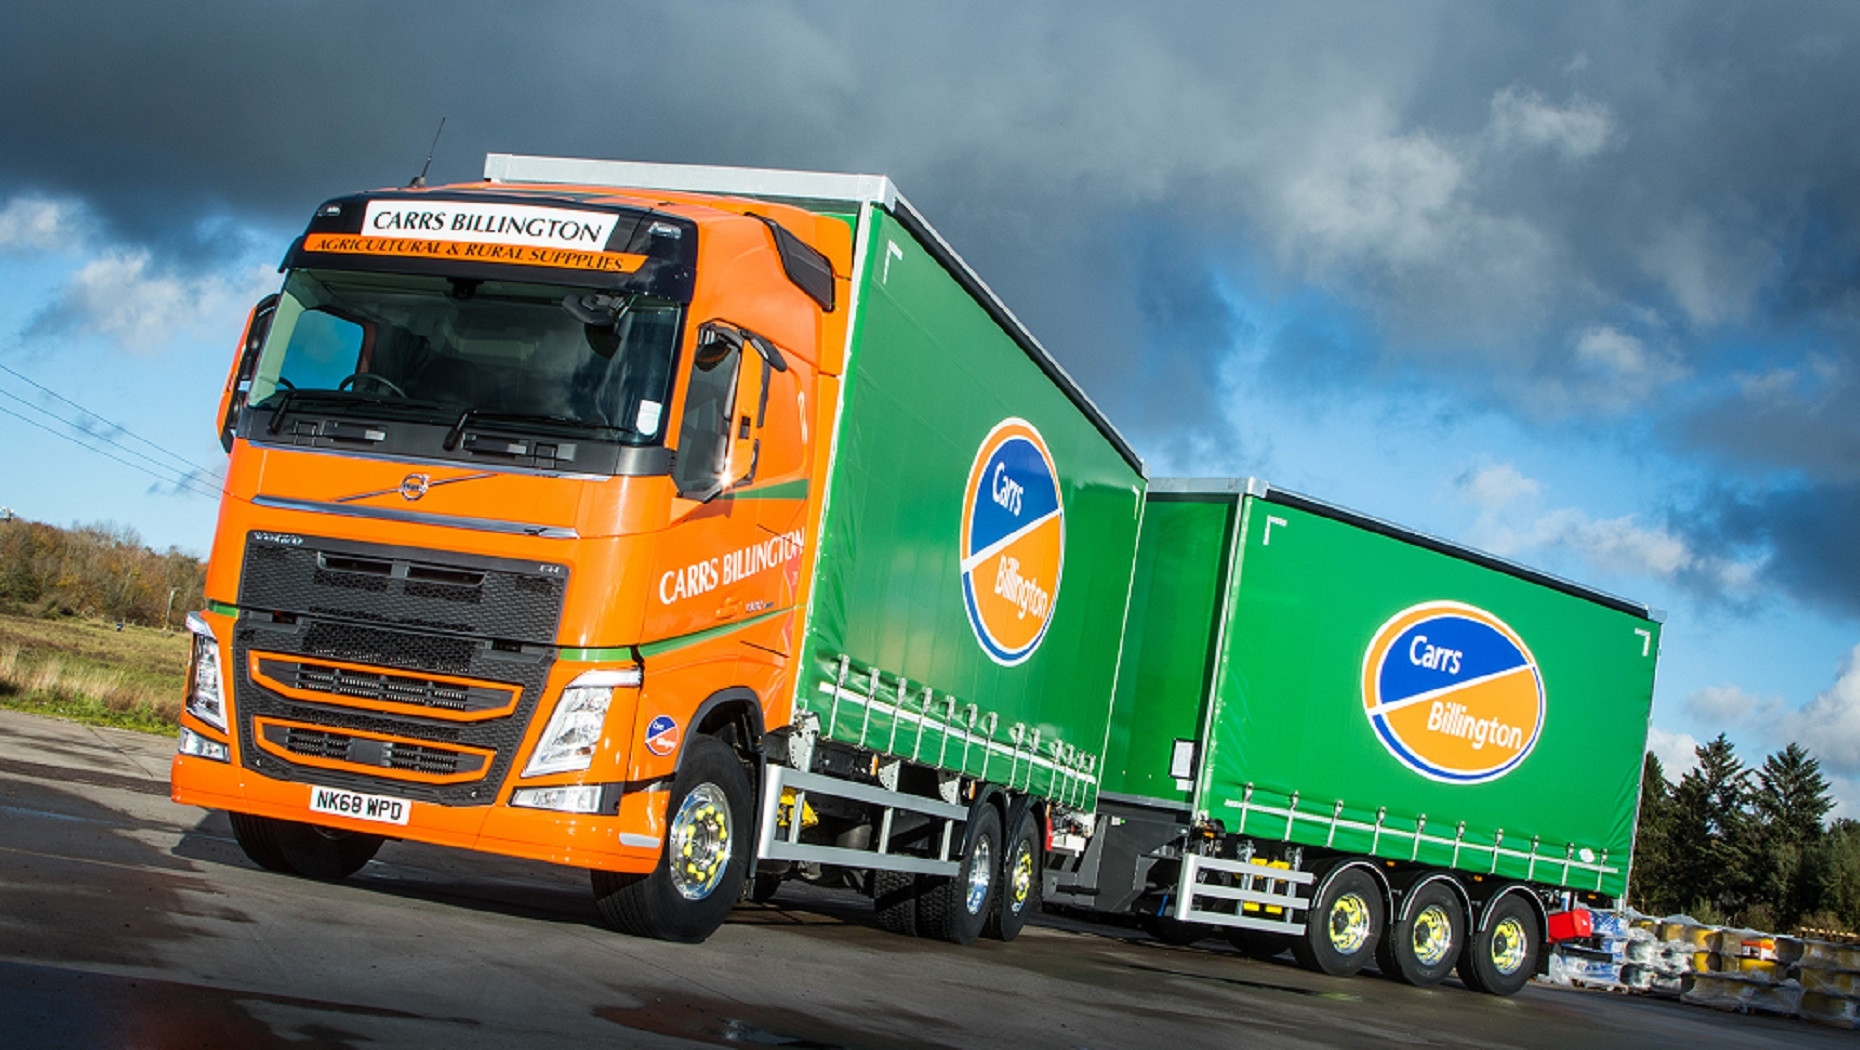 A New Volvo FH 500 Boosts Supply Chains at Carrs Billington